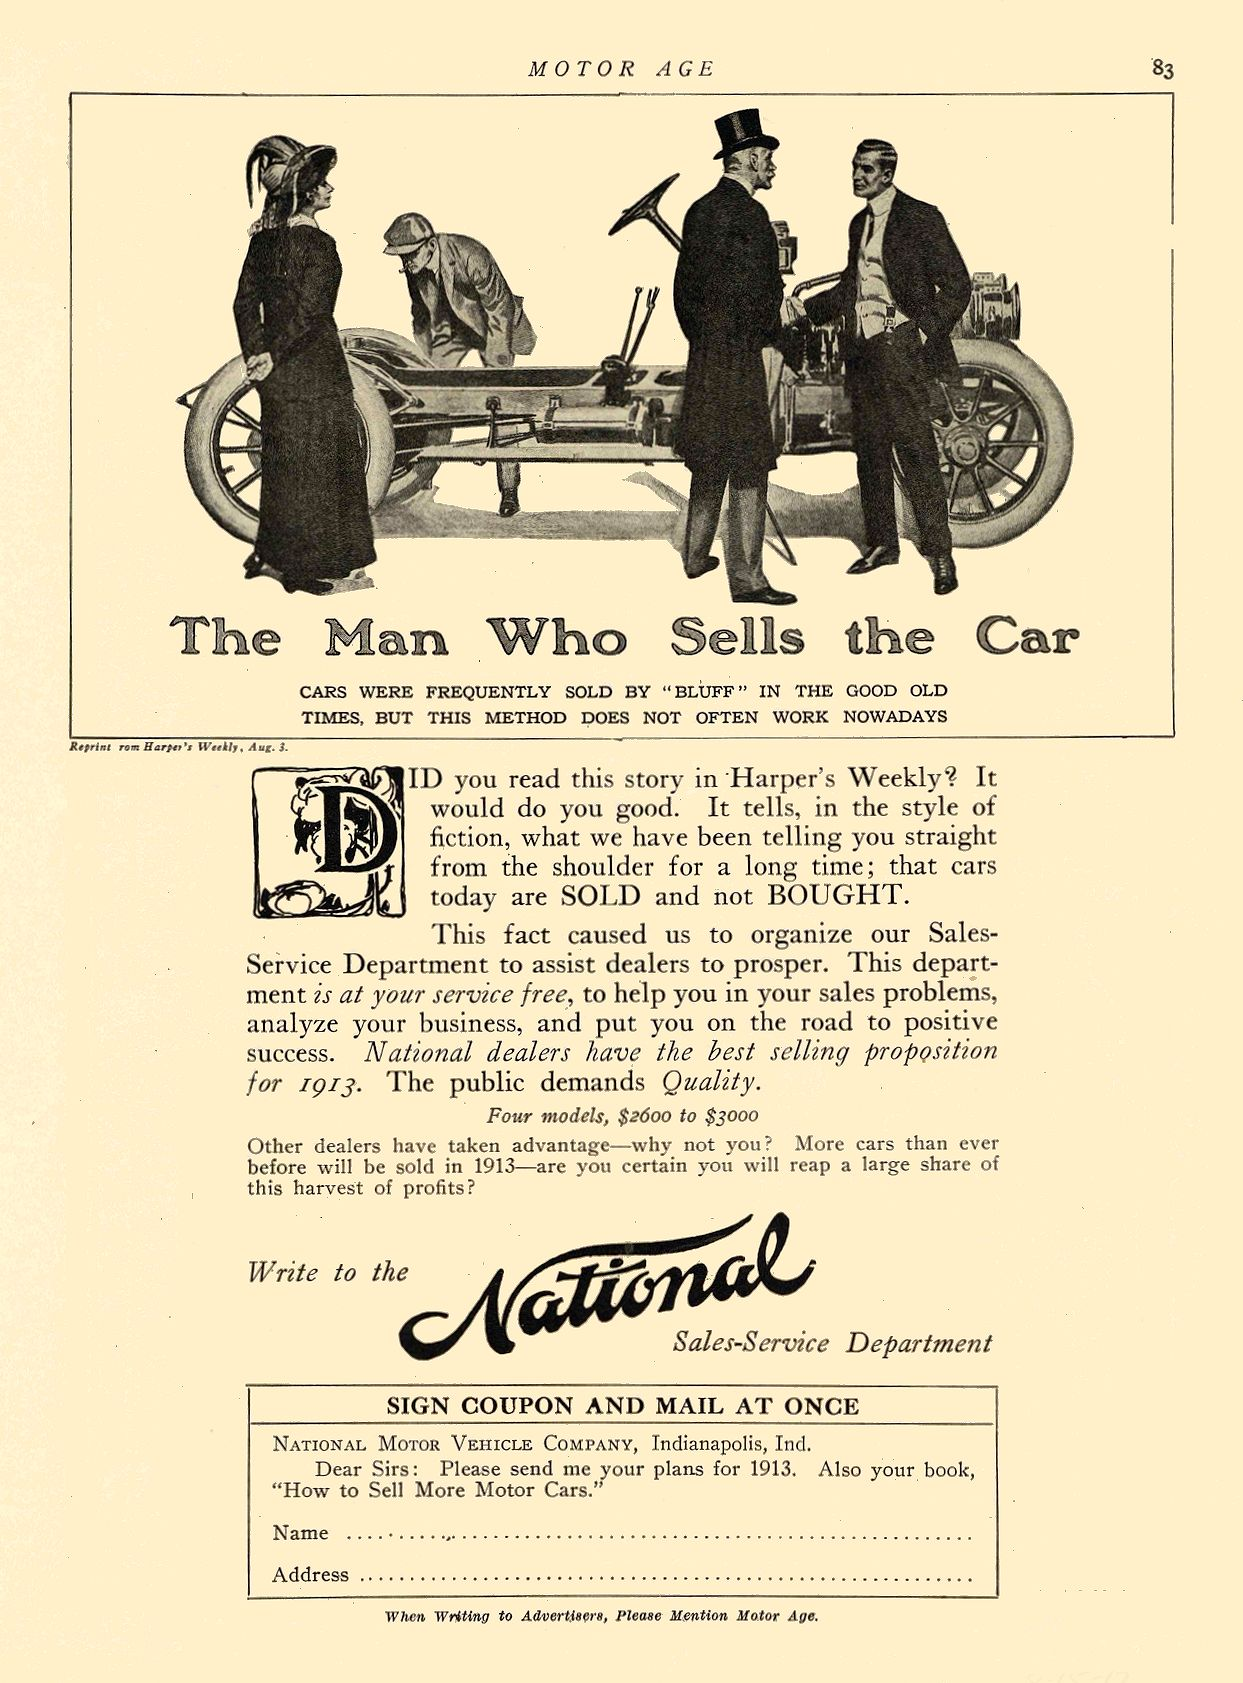 1912 8 15 NATIONAL The Man Who Sells the Car National NATIONAL MOTOR VEHICLE COMPANY Indianapolis, IND MOTOR AGE August 15, 1912 8.5″x12″ page 83